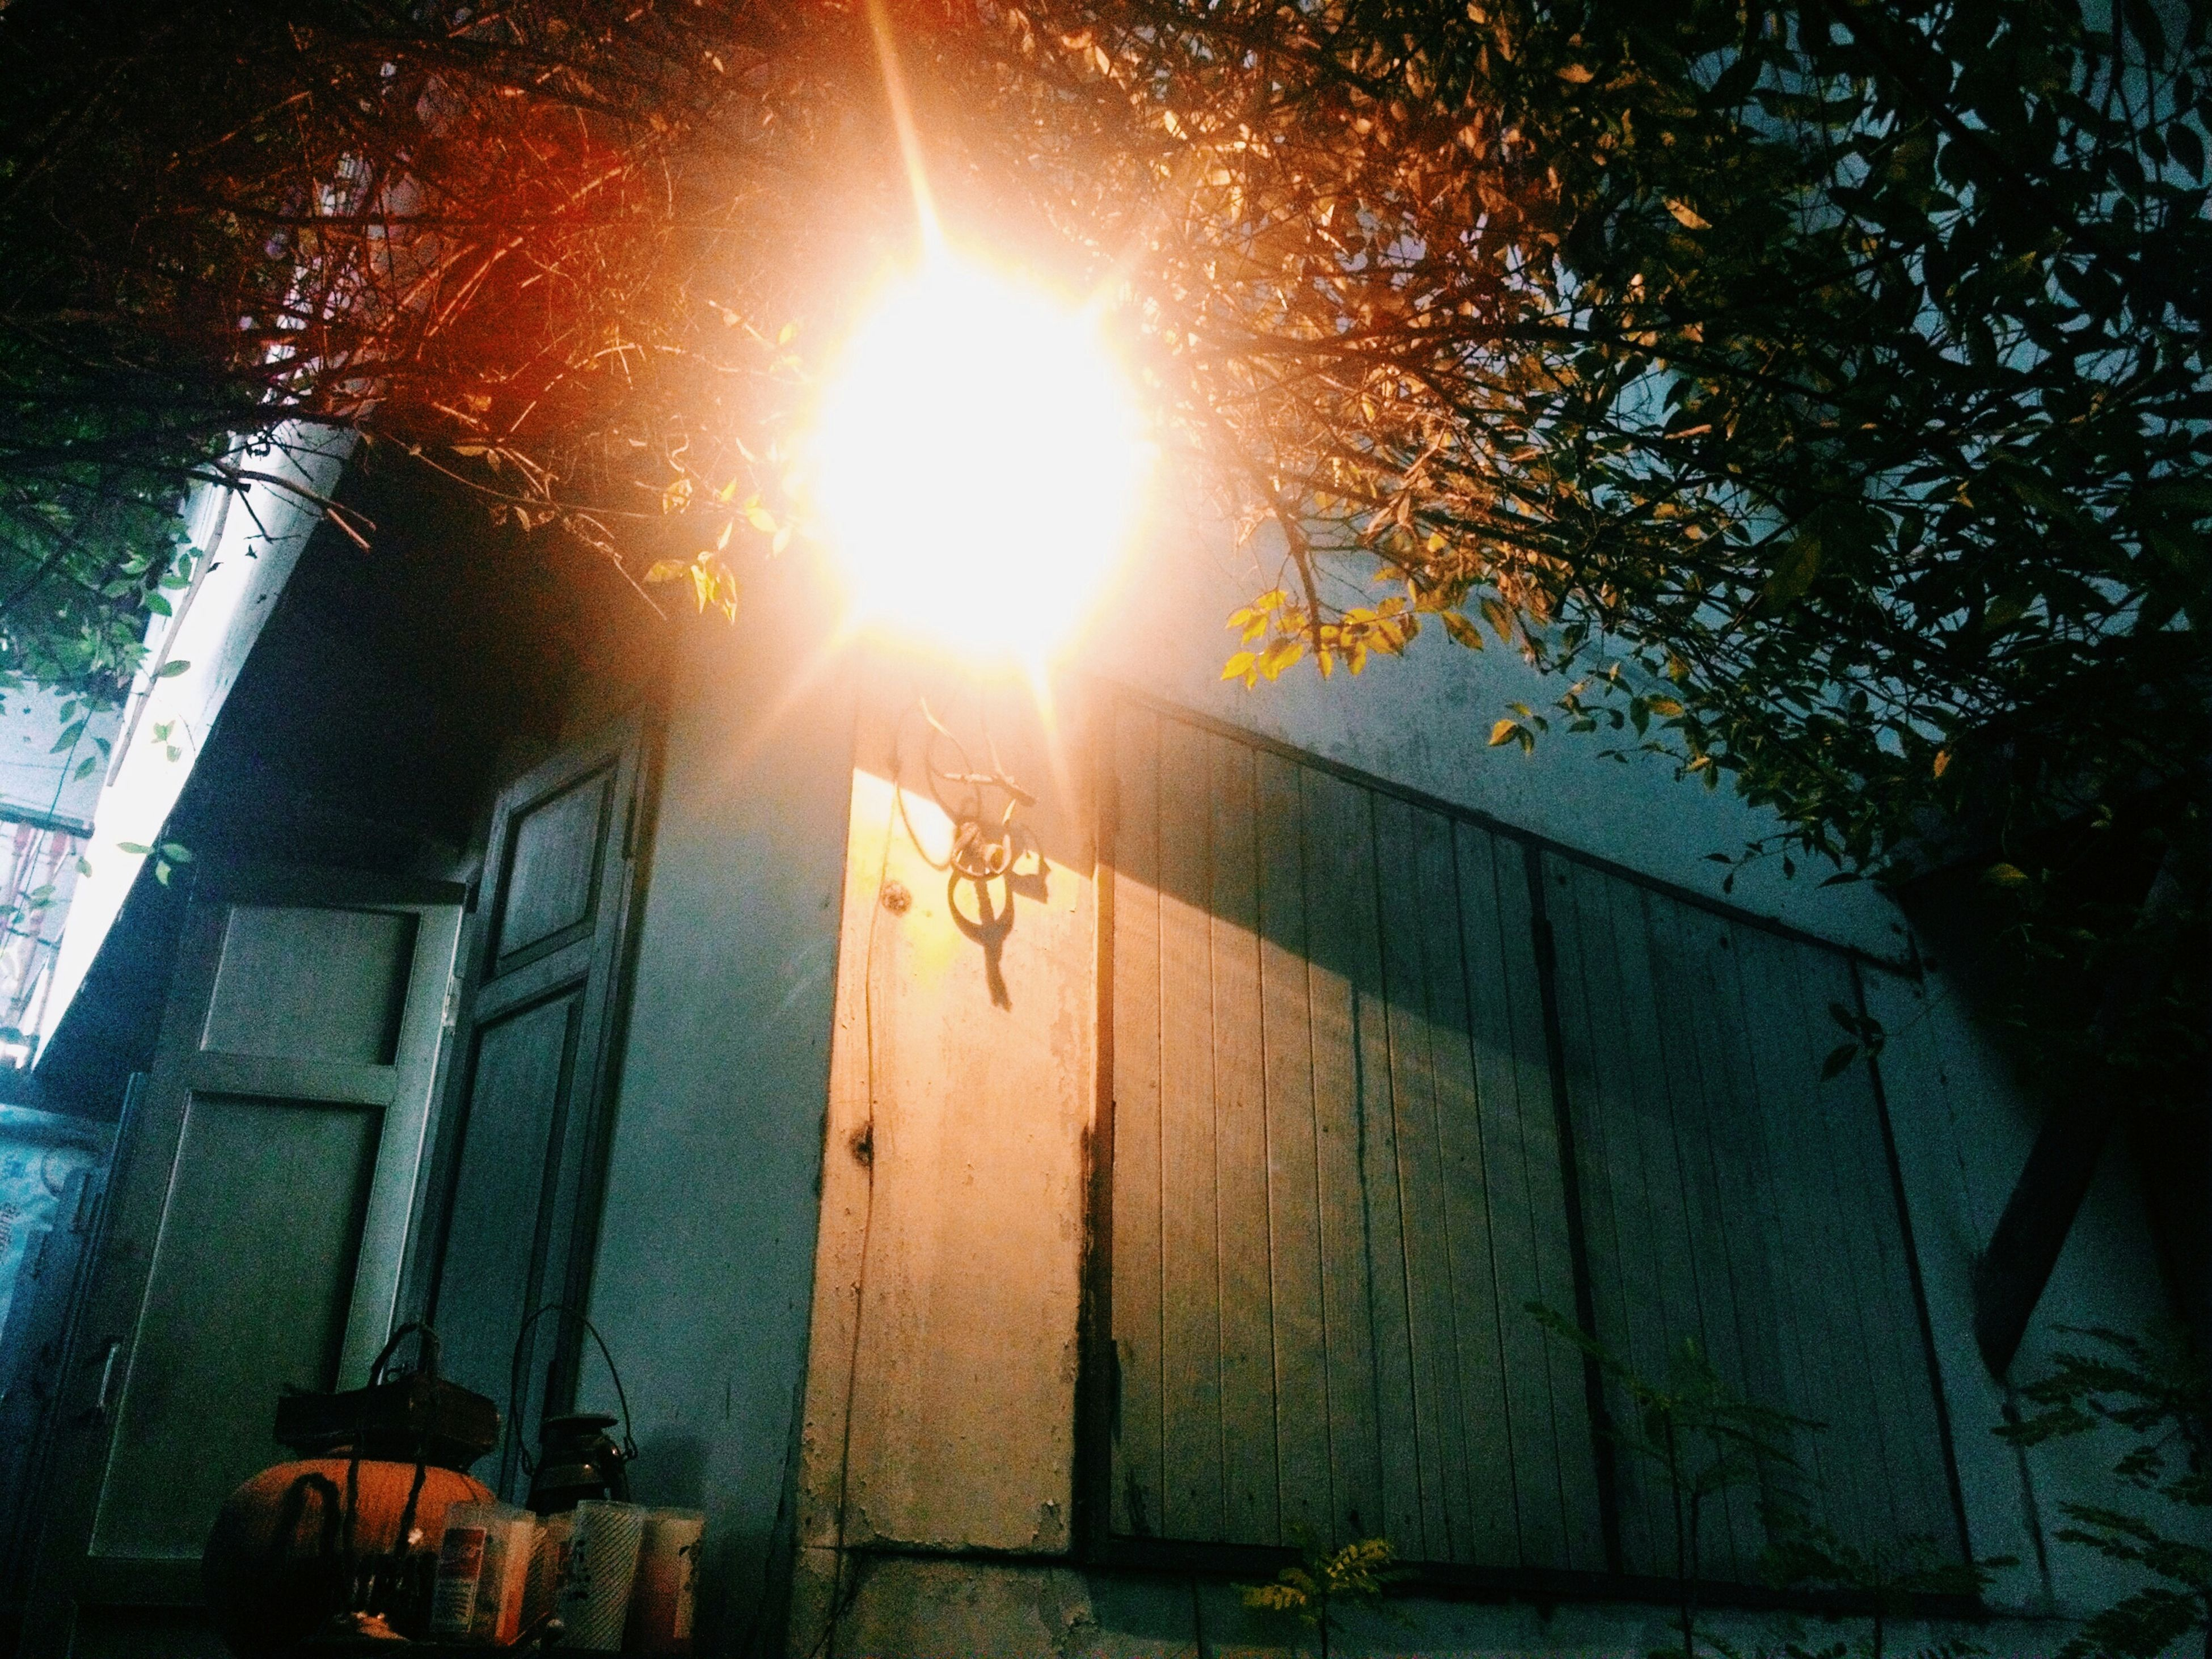 built structure, architecture, building exterior, night, sunlight, illuminated, low angle view, tree, outdoors, wood - material, house, no people, sun, street light, lens flare, sunbeam, building, wall - building feature, lighting equipment